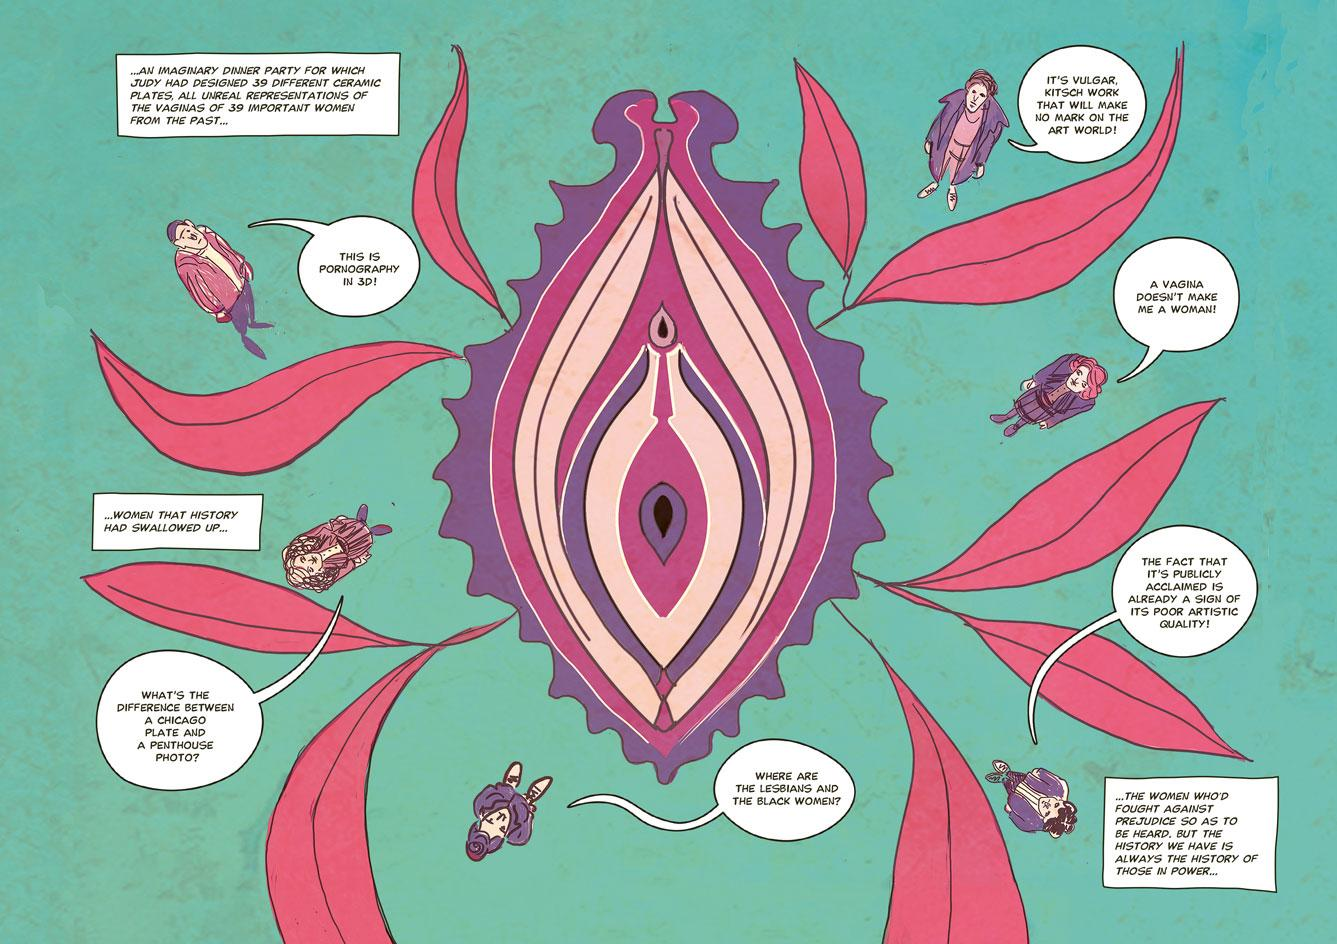 spreads from graphic novelThe Women Who Changed Art Forever –Feminist Art Graphic Novel, byValentina Grande and Eva Rosetti,published by Laurence King